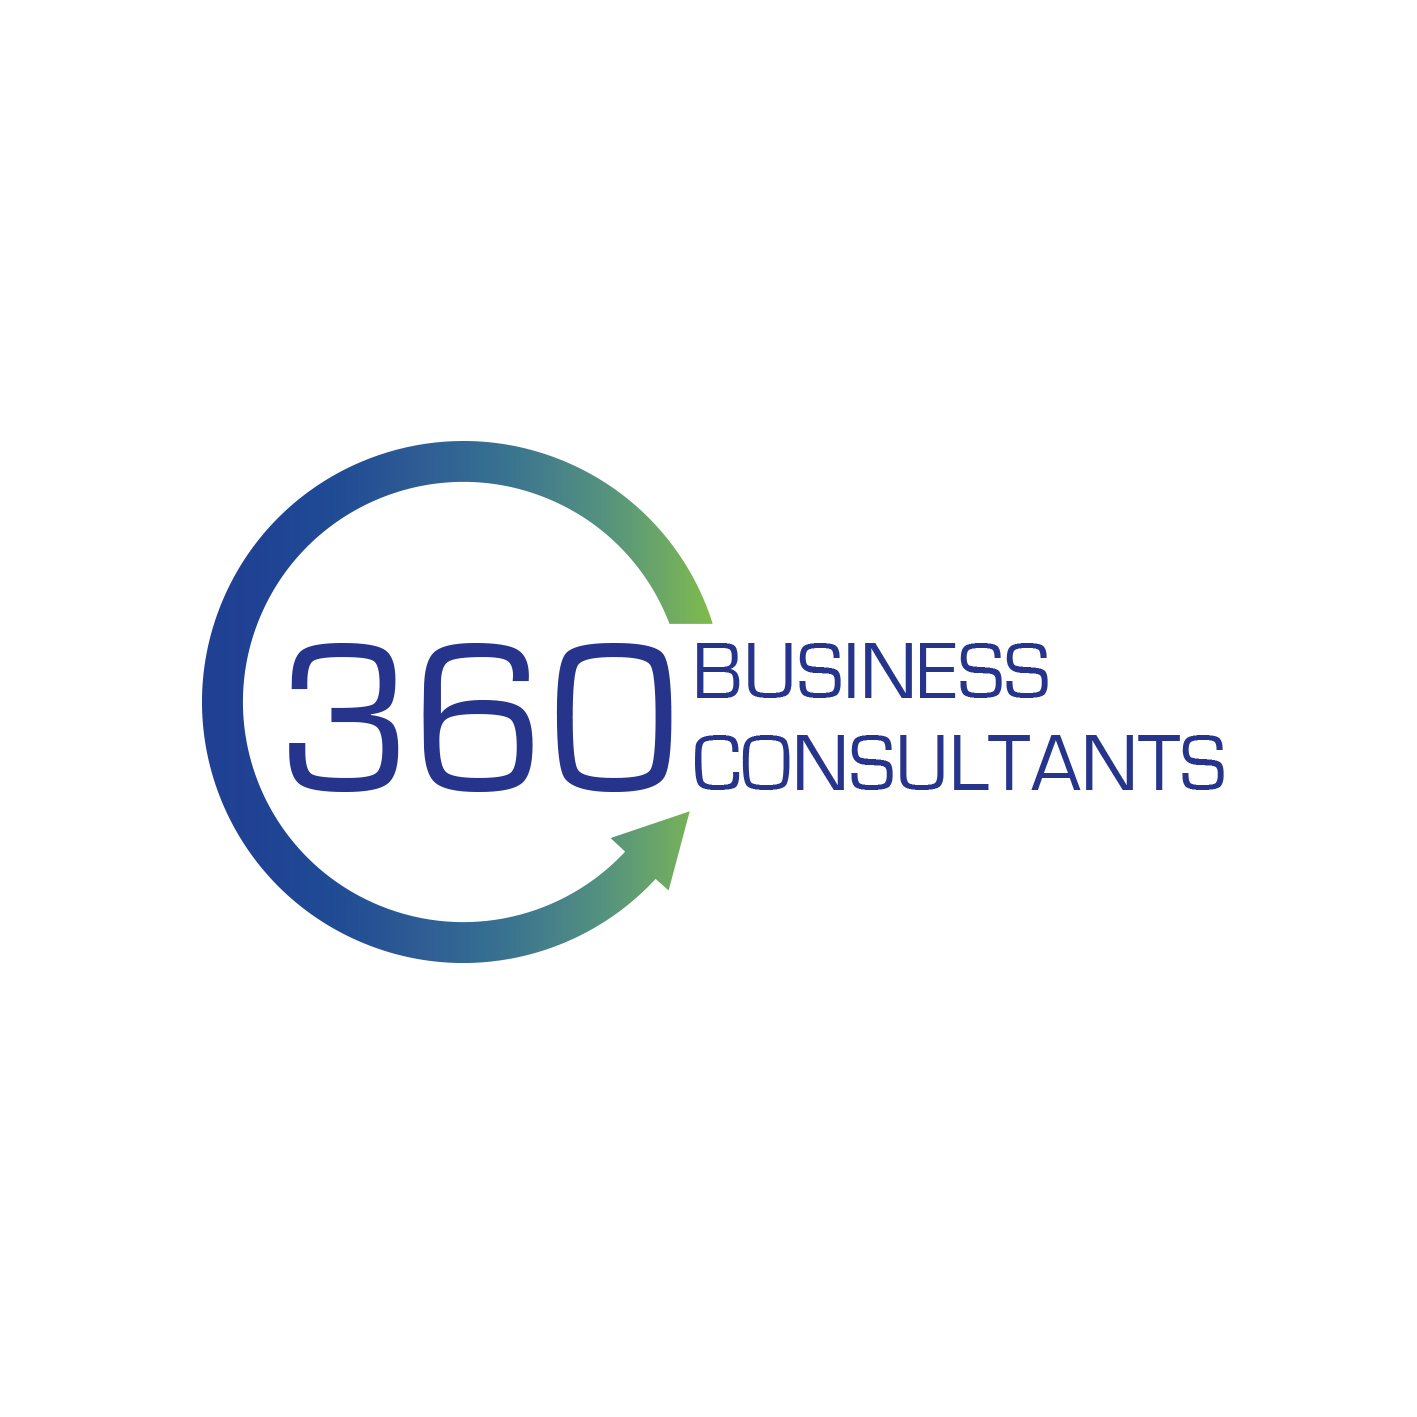 360 Business Consultants